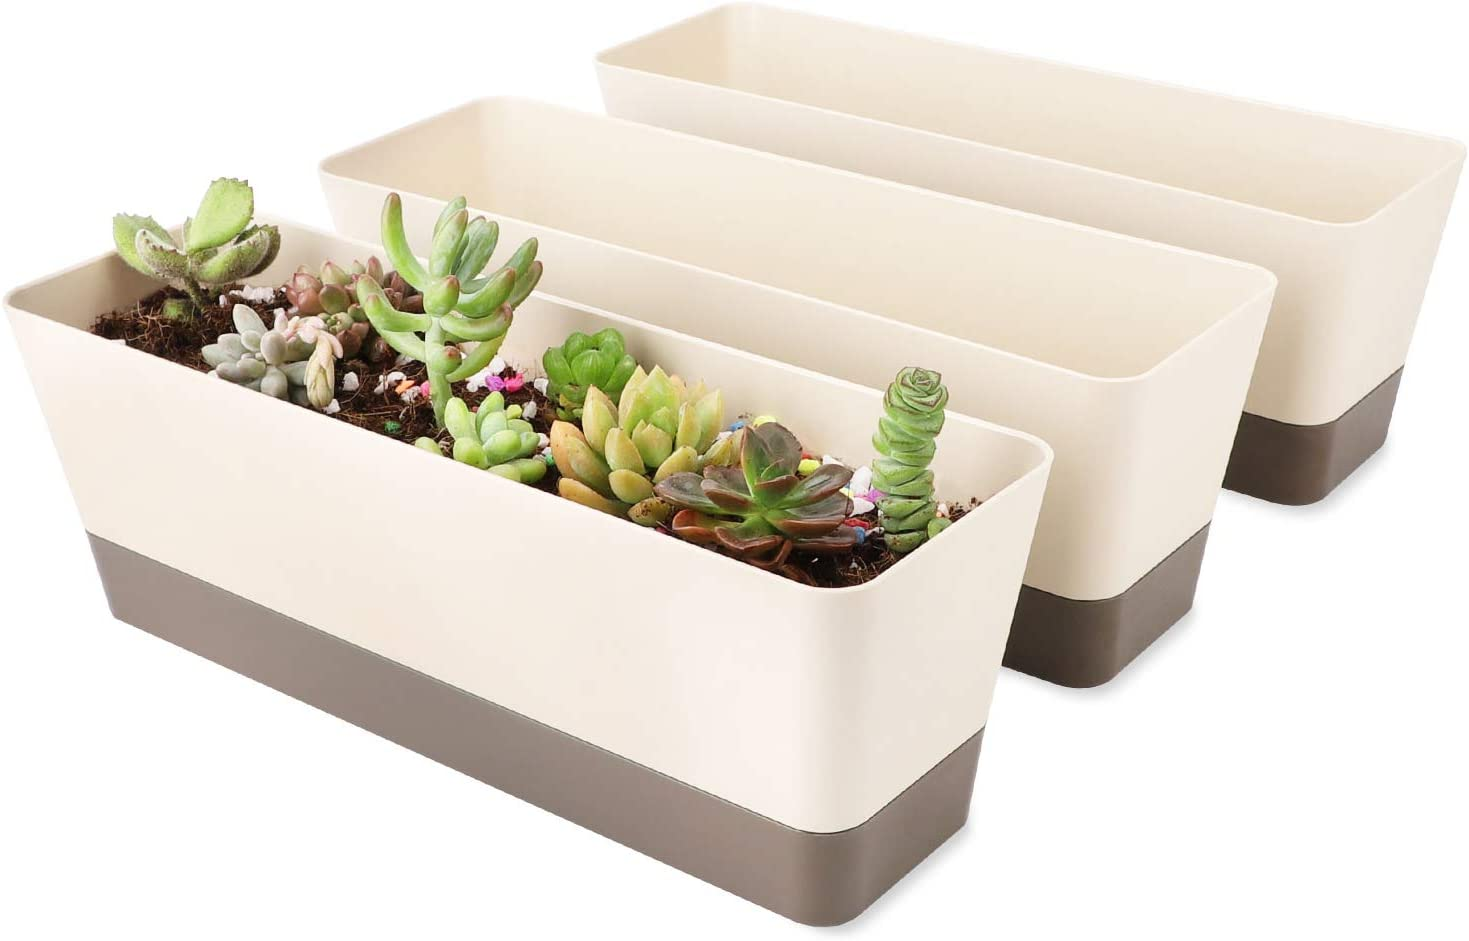 Rectangle Planter for Plants, Suream 3 Pack 12x3.8 Inch Modern Small Succulent Cactus Indoor Window Boxes with Saucer Plastic Plant Pots for Windowsill, Garden Balcony, Home Office Outdoor Decoration